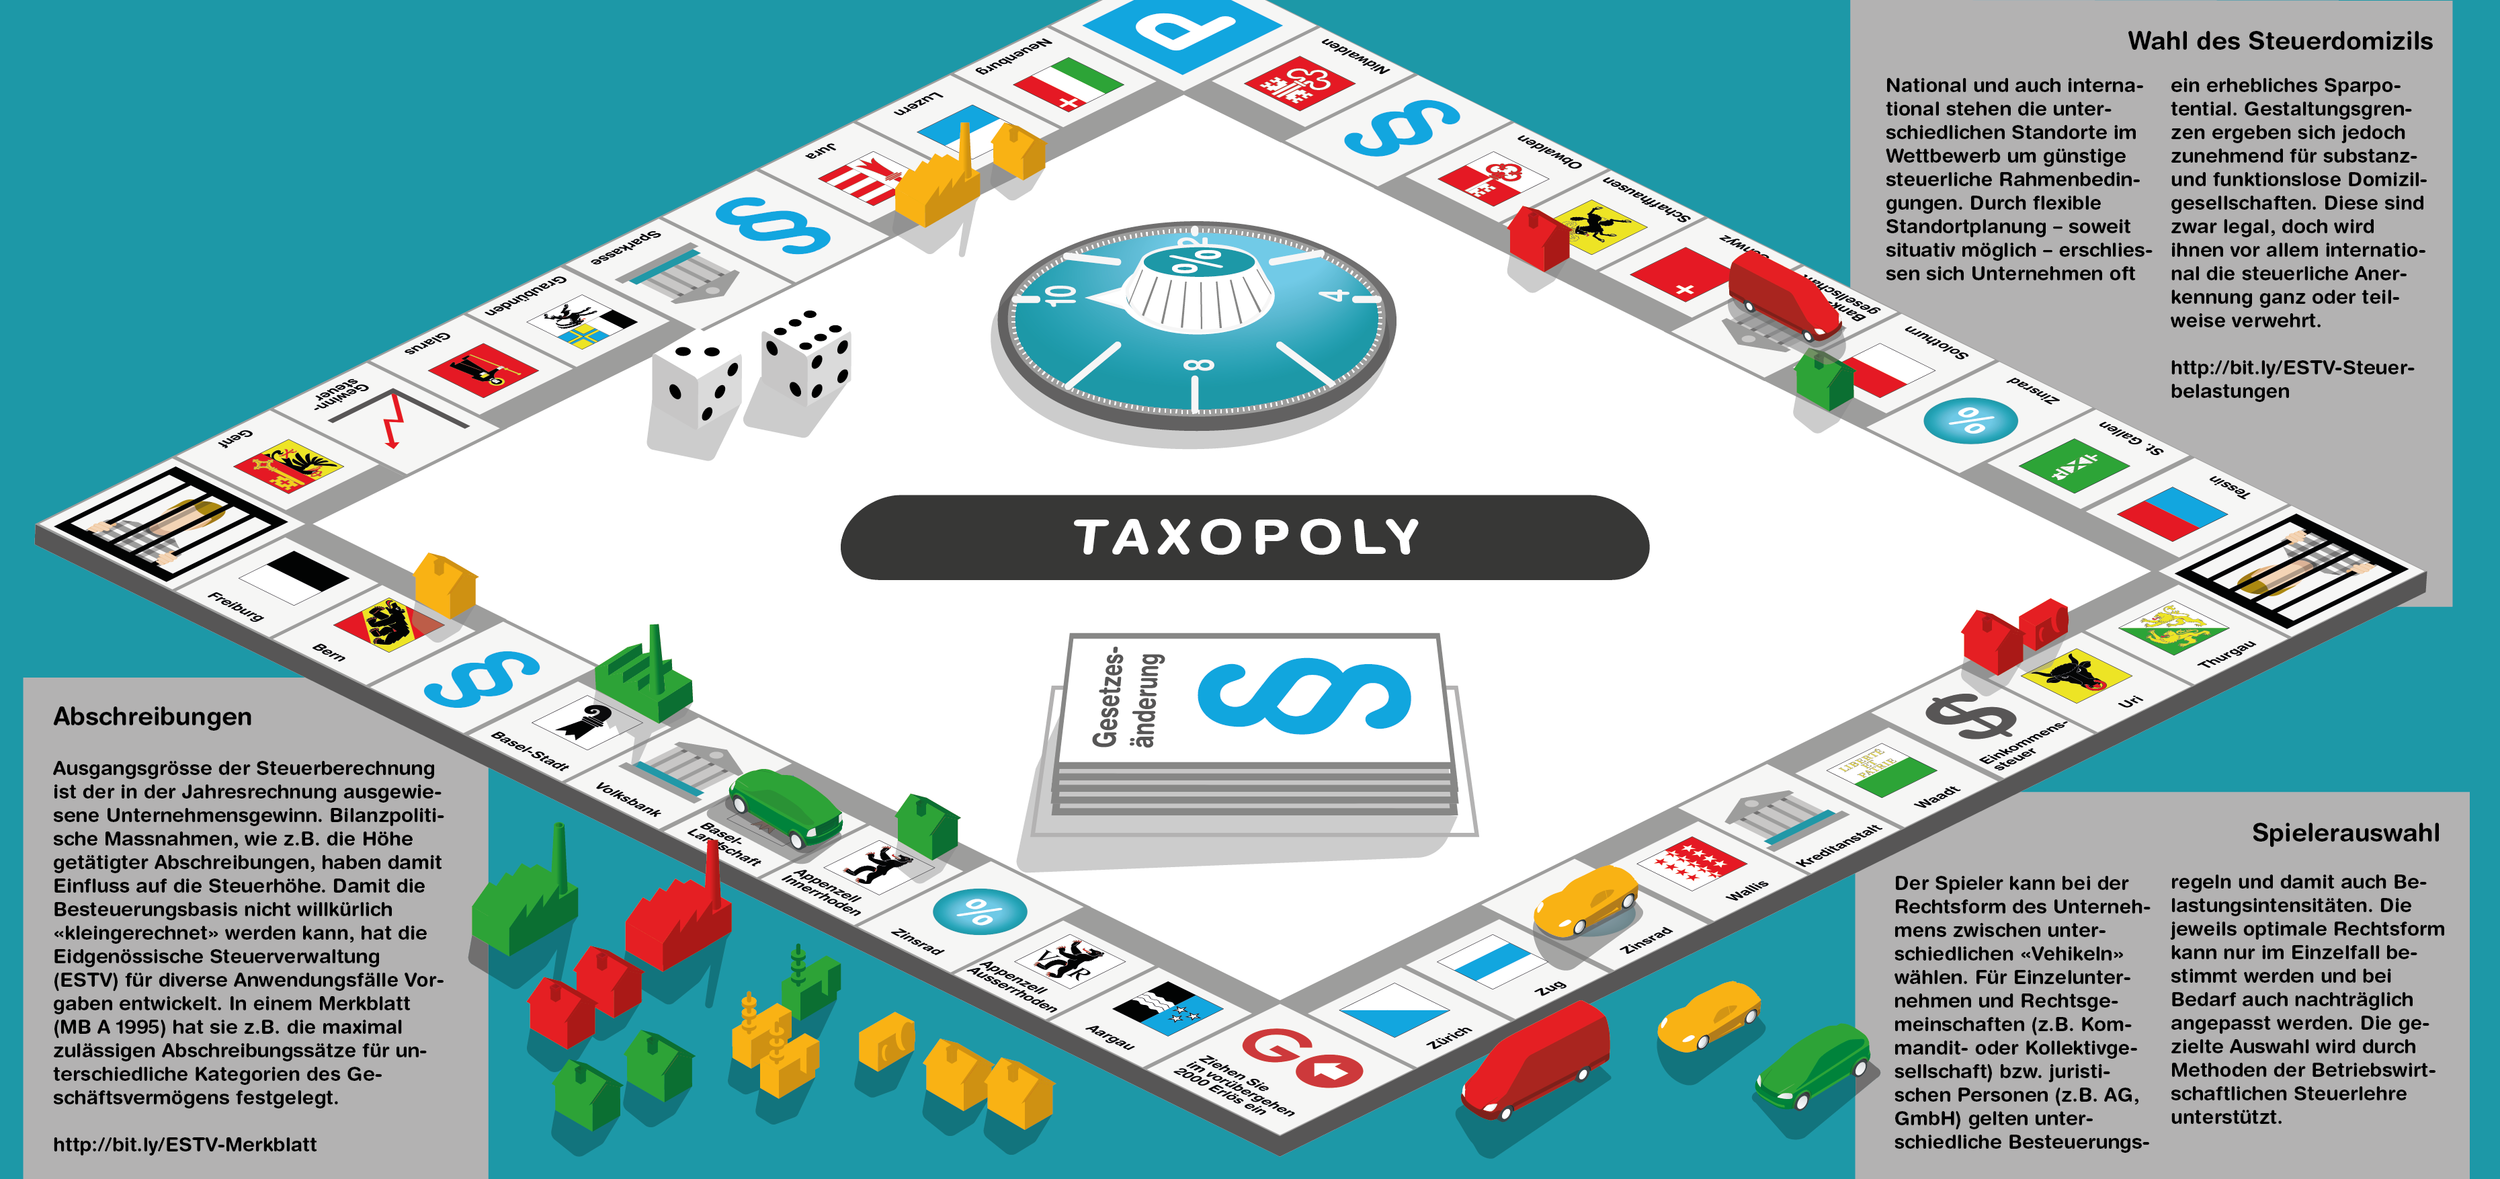 zhaw_SML_taxopoly_170420_v2.png